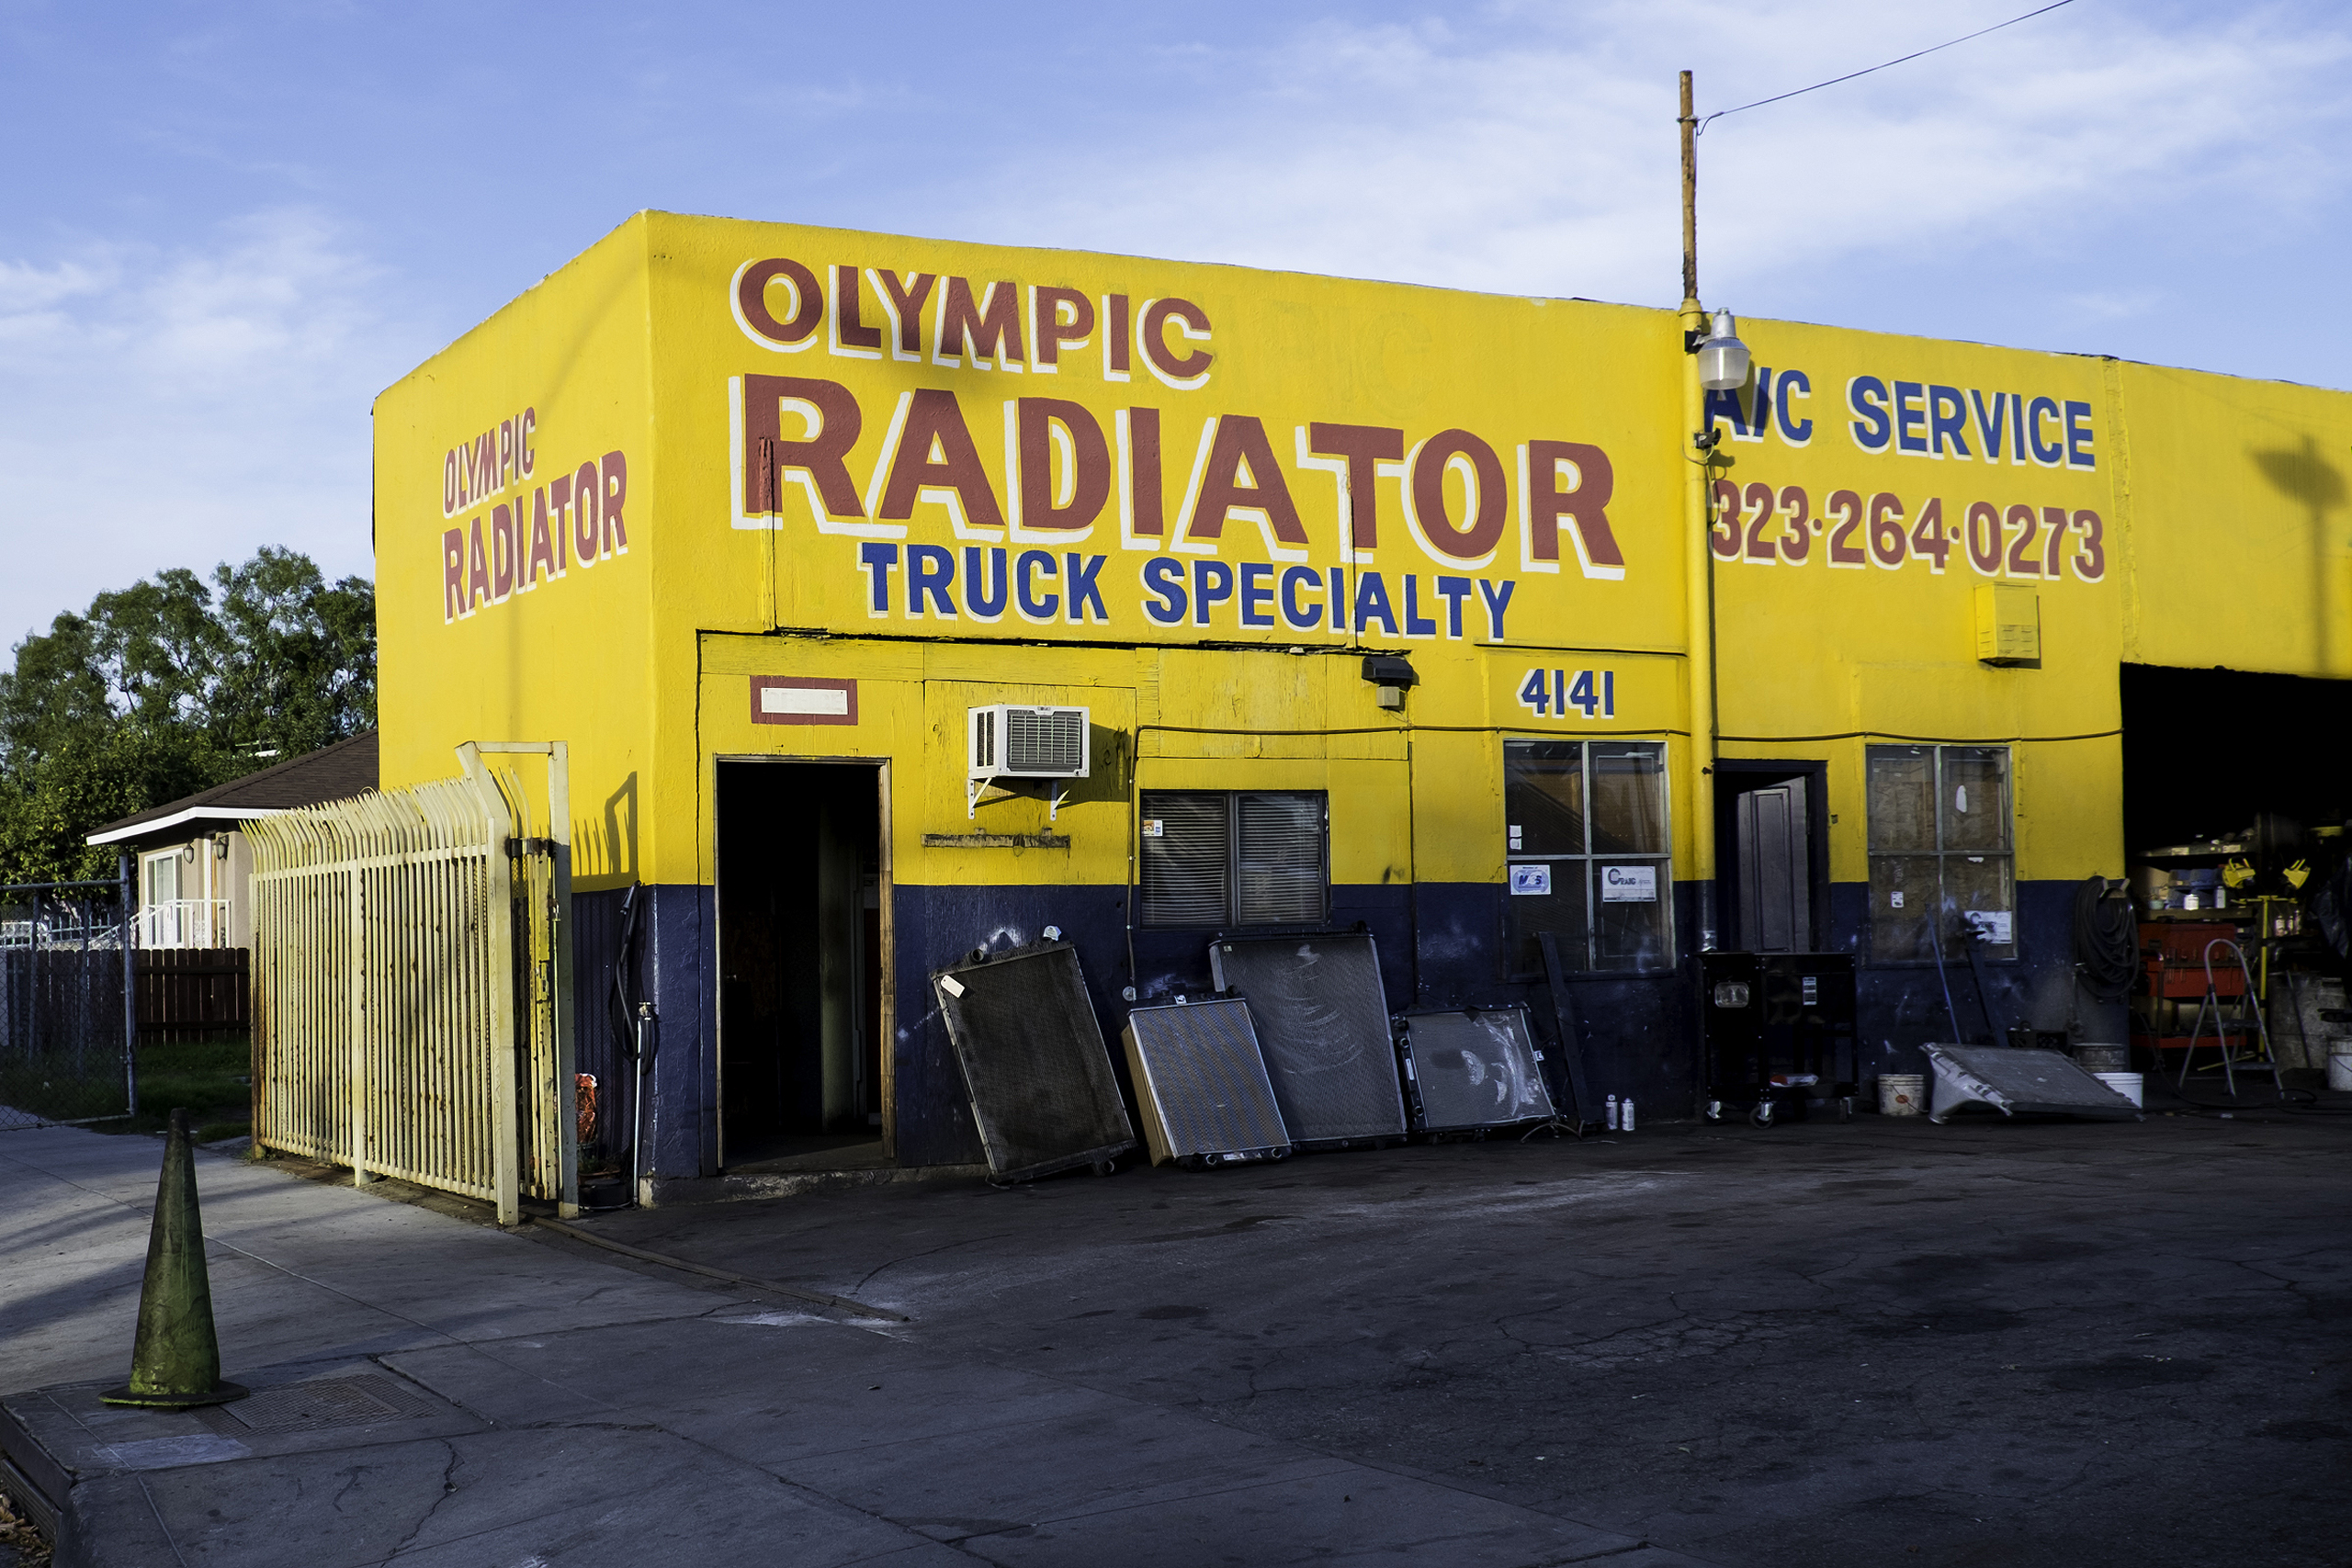 Olympic Radiator is located on Olympic Boulevard in Los Angeles, host of the 1932 and 1984 Summer Olympics, photographed in June 2012. The city changed the name of 10th Avenue to Olympic Boulevard; the street name and many similarly named businesses remain today.